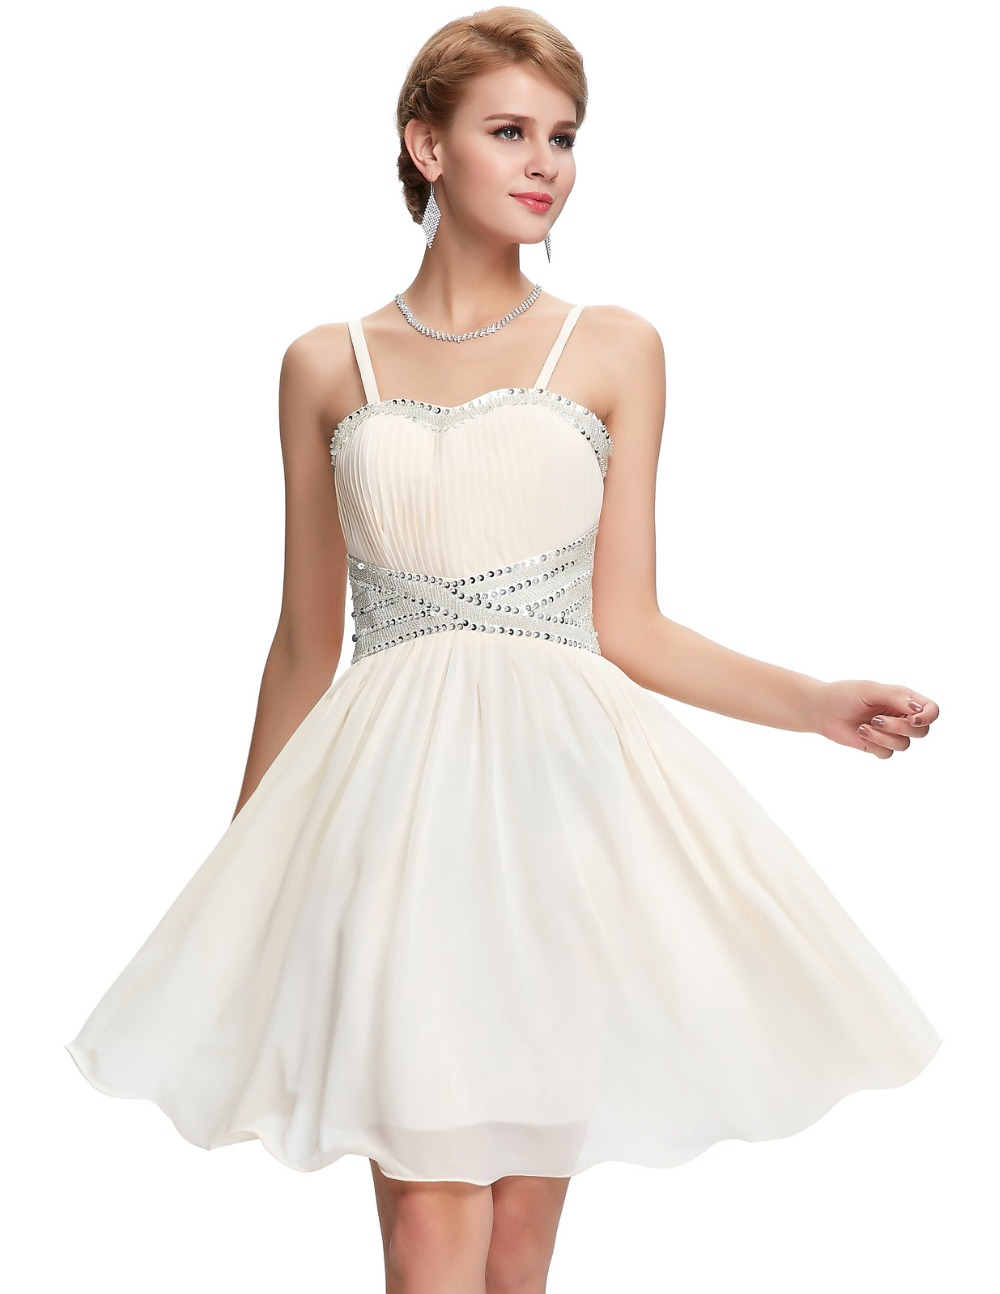 Formal Dresses Under 50 Dollars